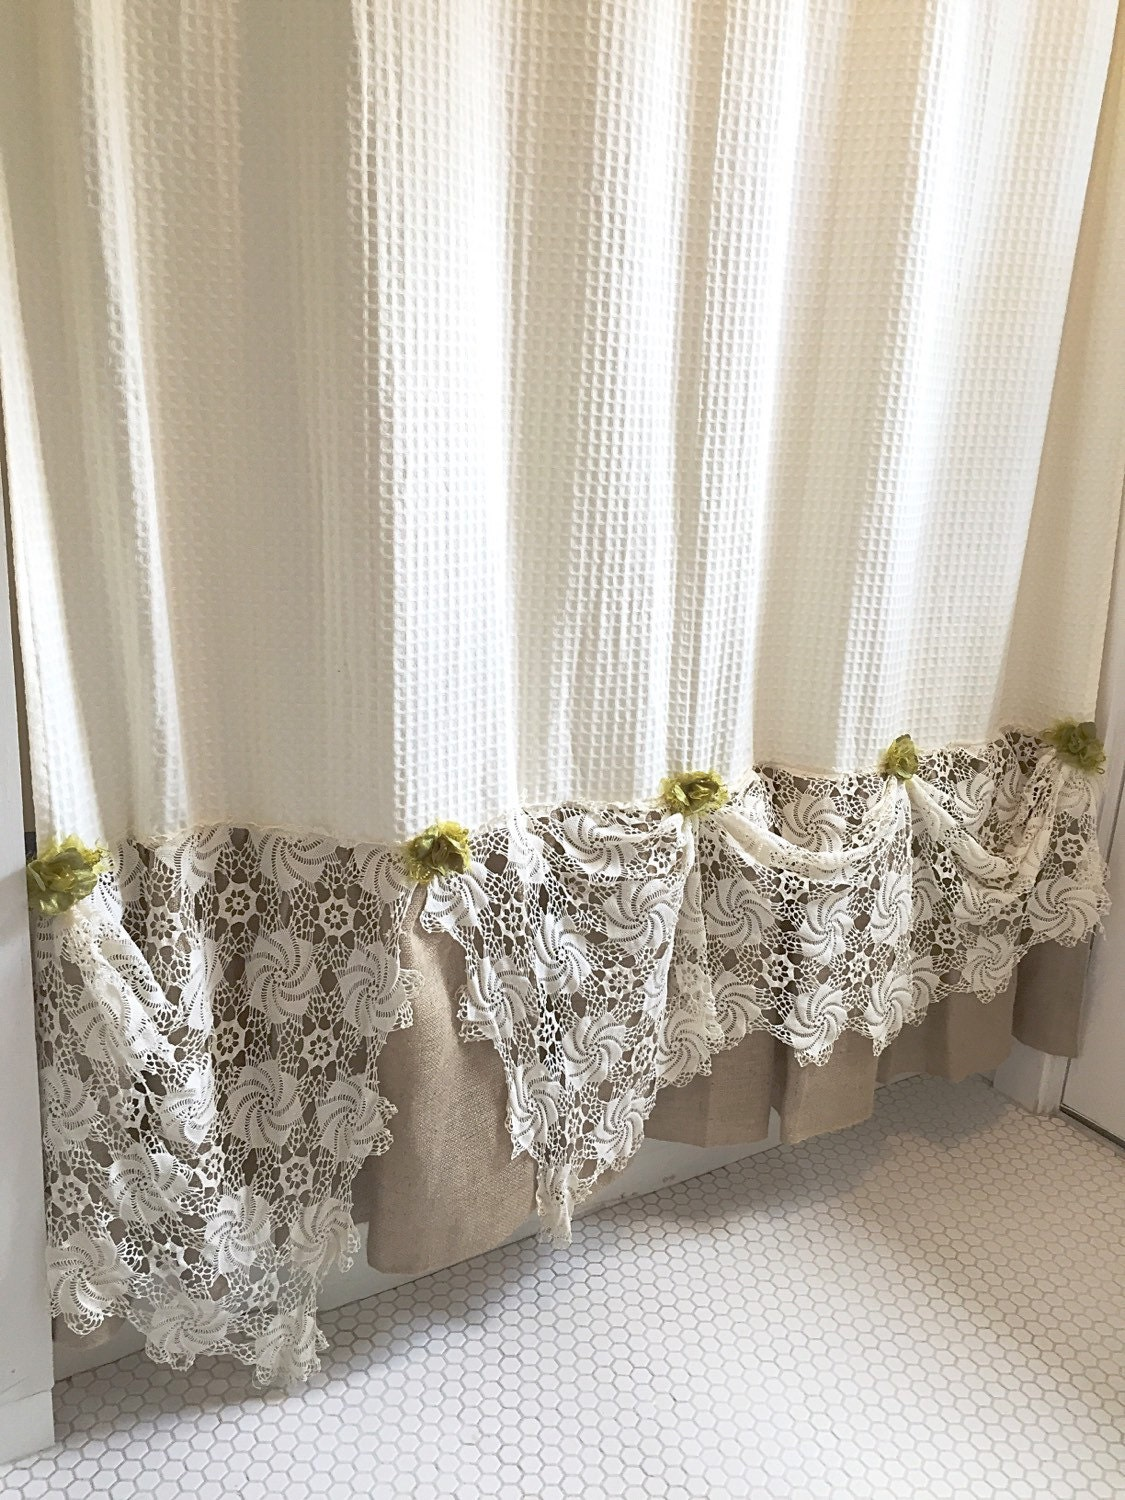 Burlap Ruffle Shower Curtain Natural Cream Cotton With Vintage